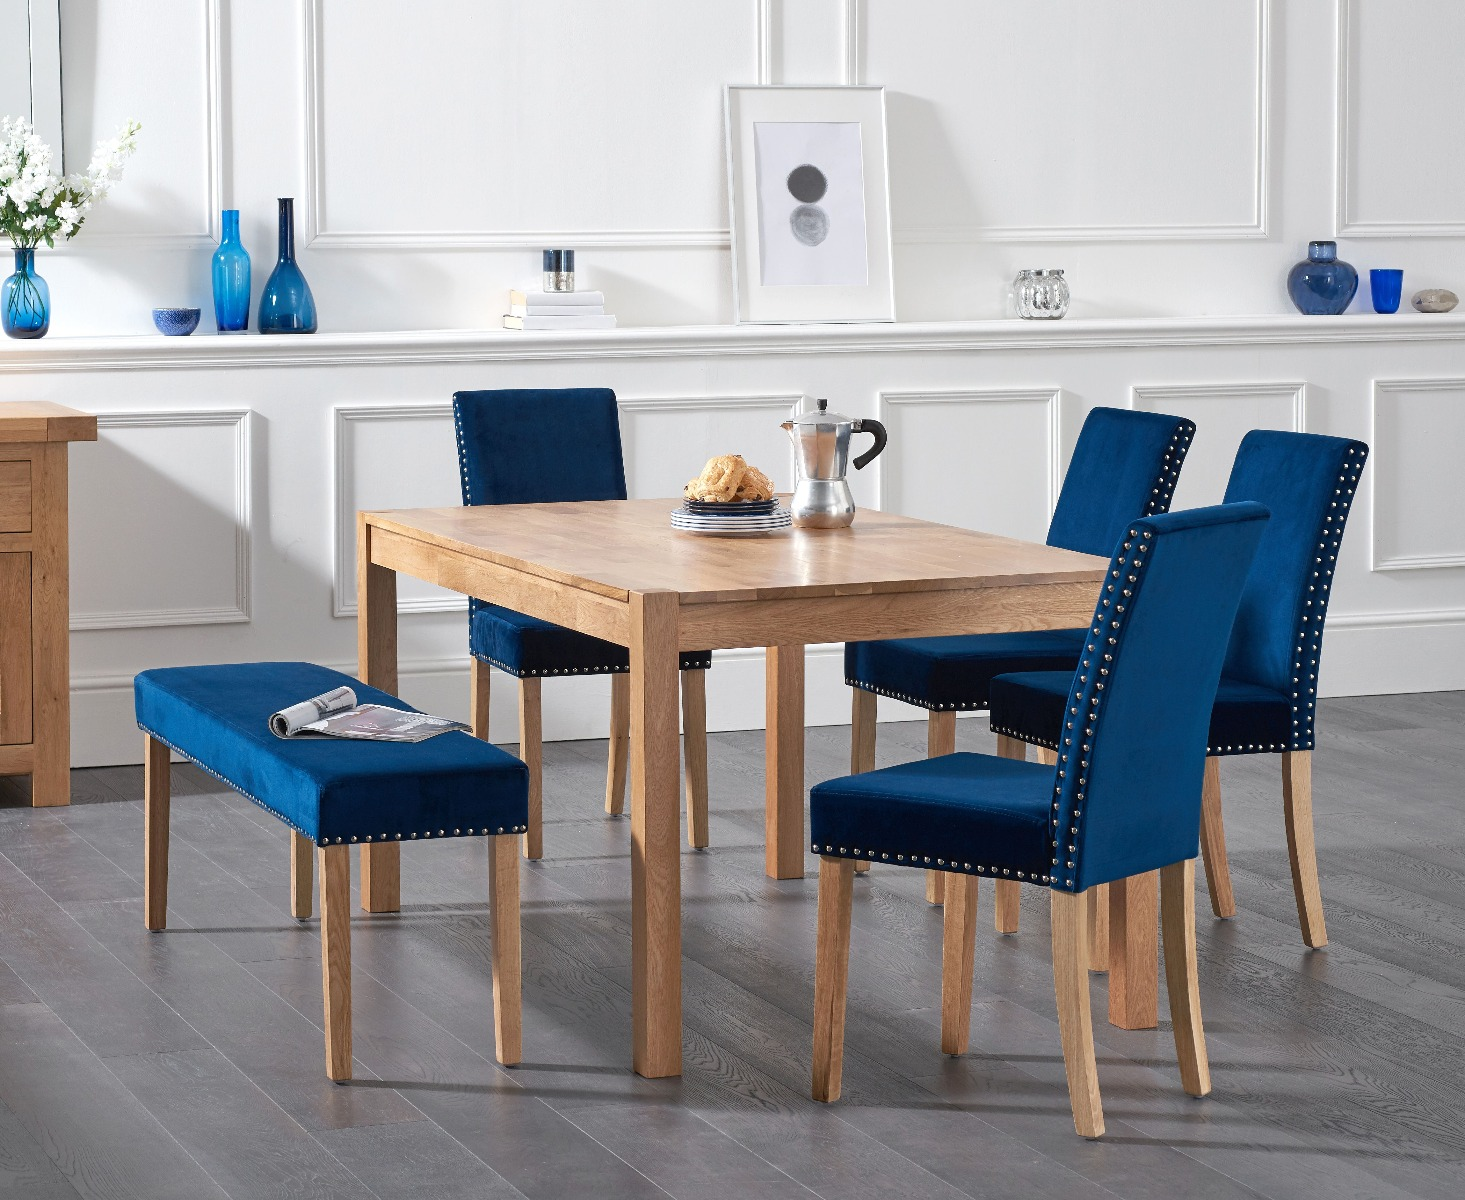 Oxford 150cm With Mia Plush Blue Studded Chairs Bench No Back 2